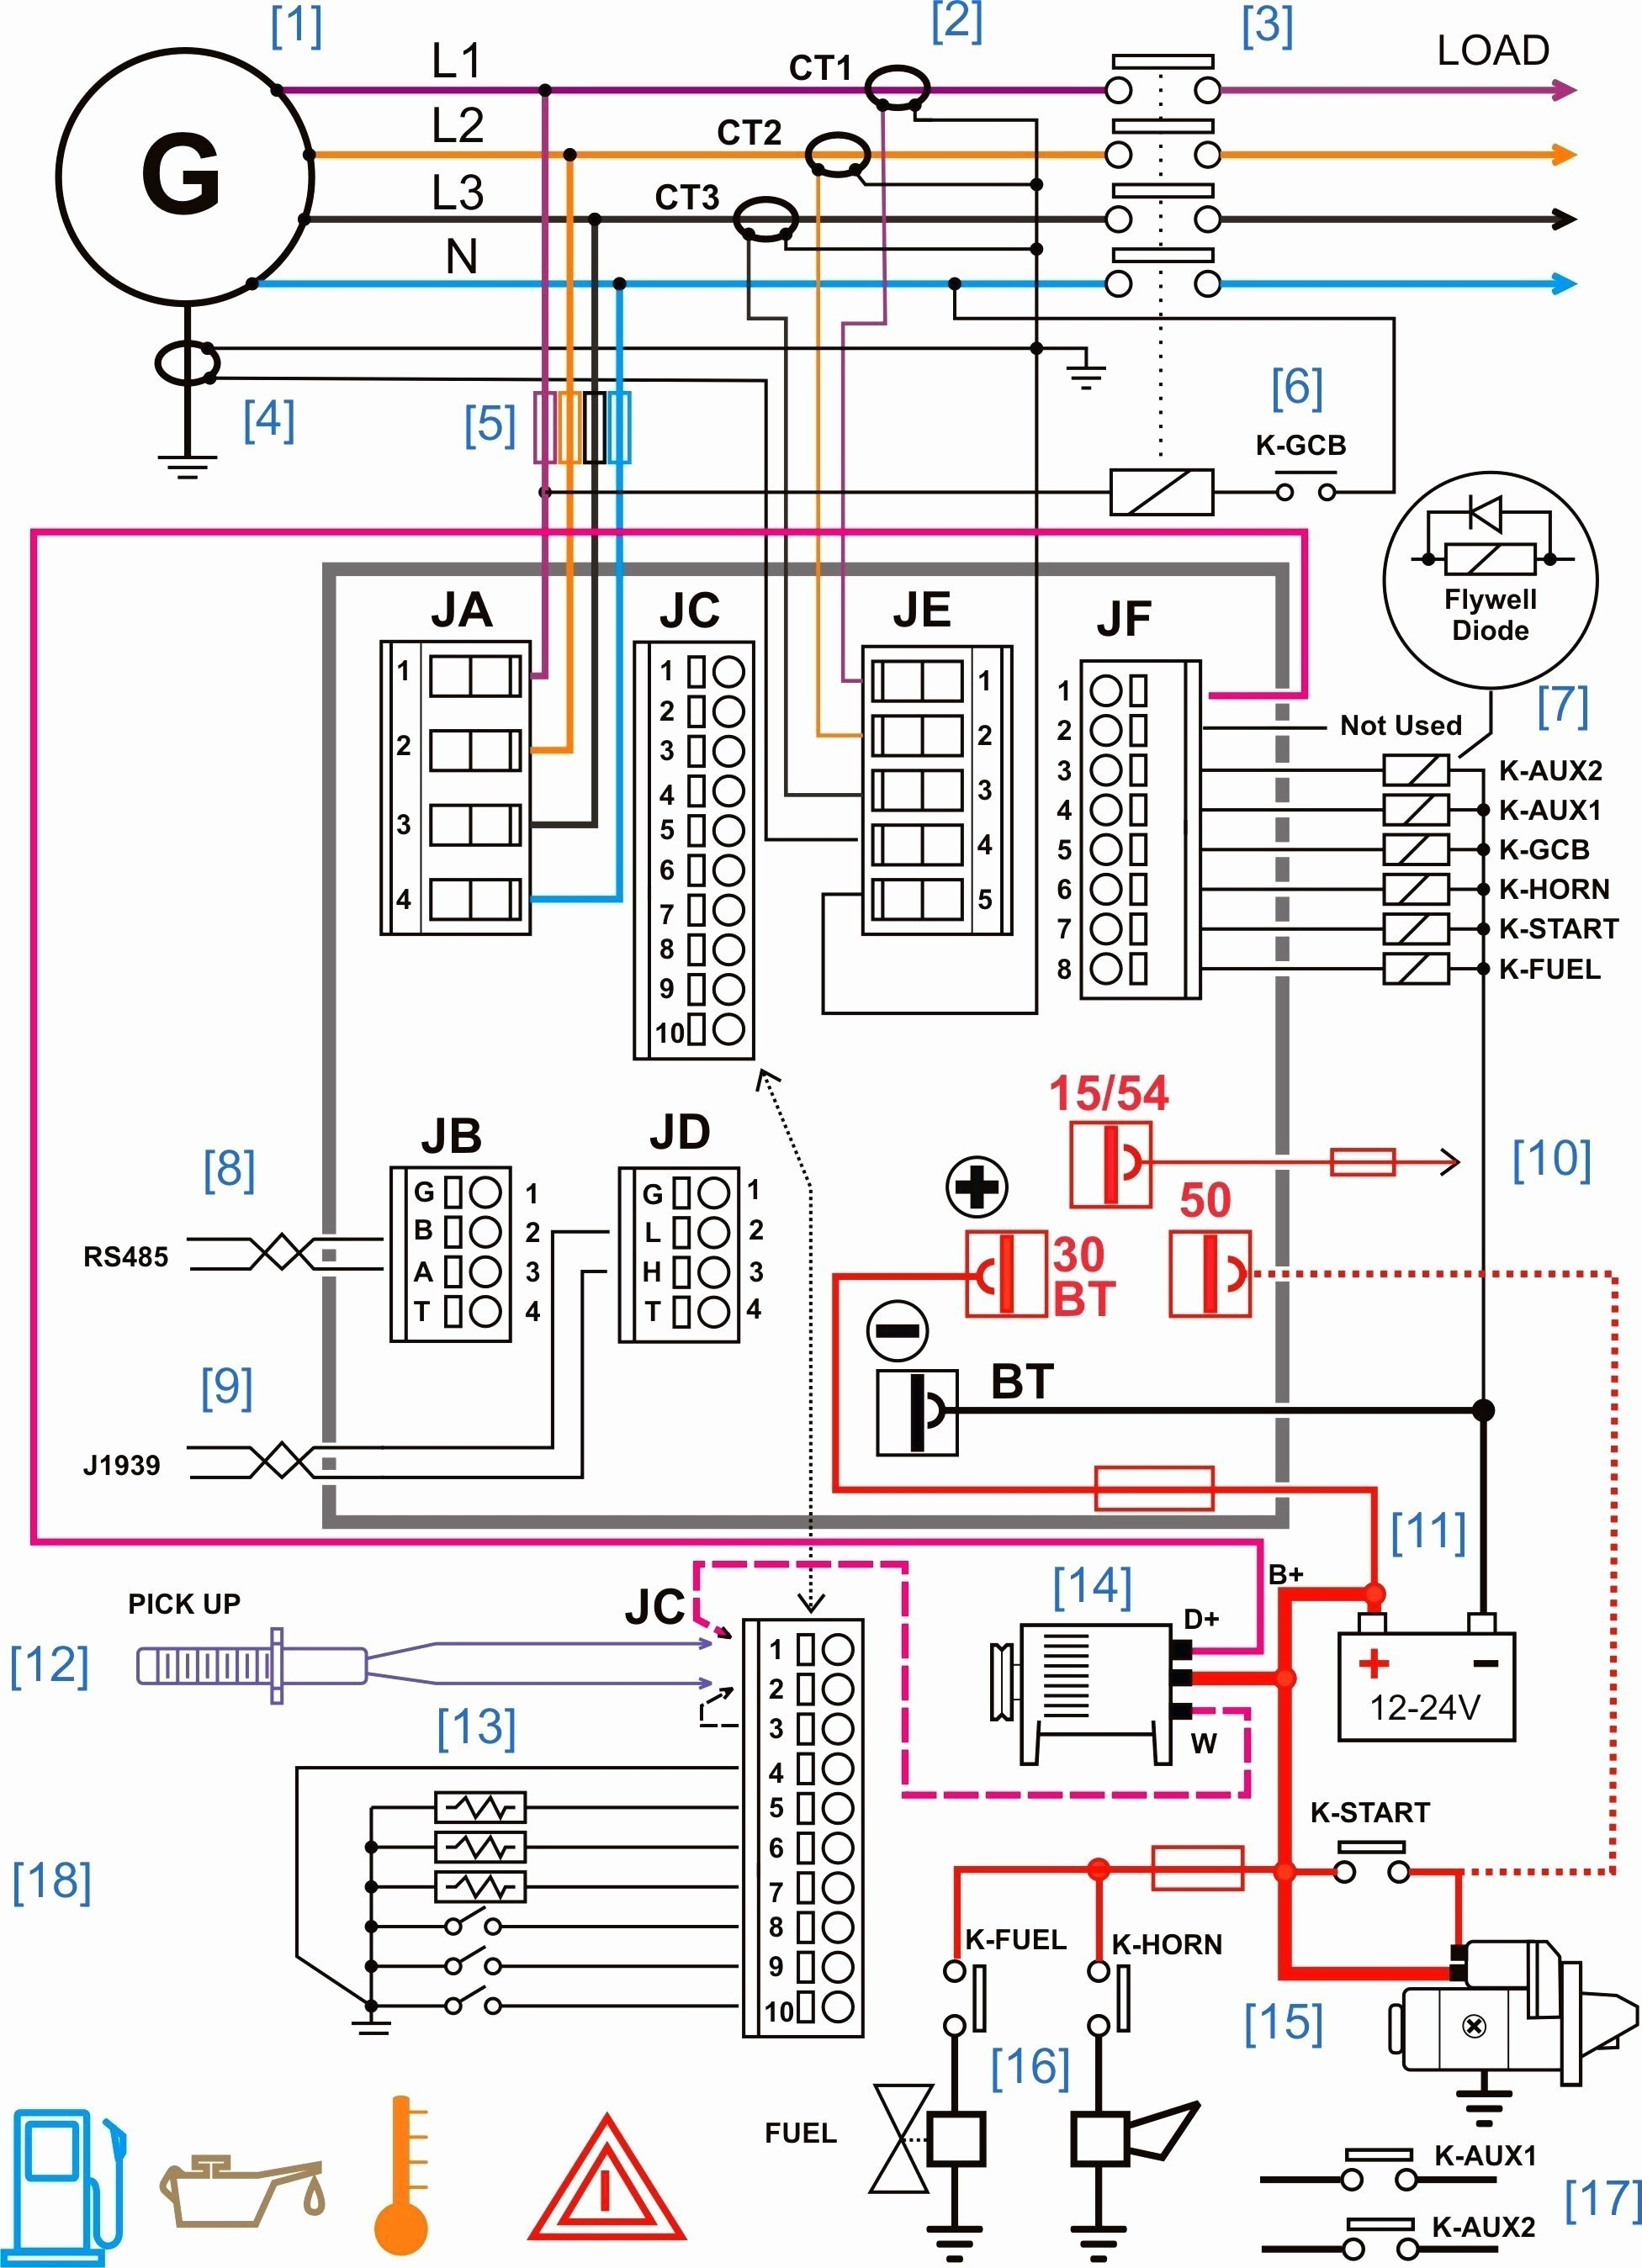 Control 4 Wiring Diagram Simplified Shapes Wiring Diagram In A Car Inspirationa Car Stereo Wiring Diagrams 0d